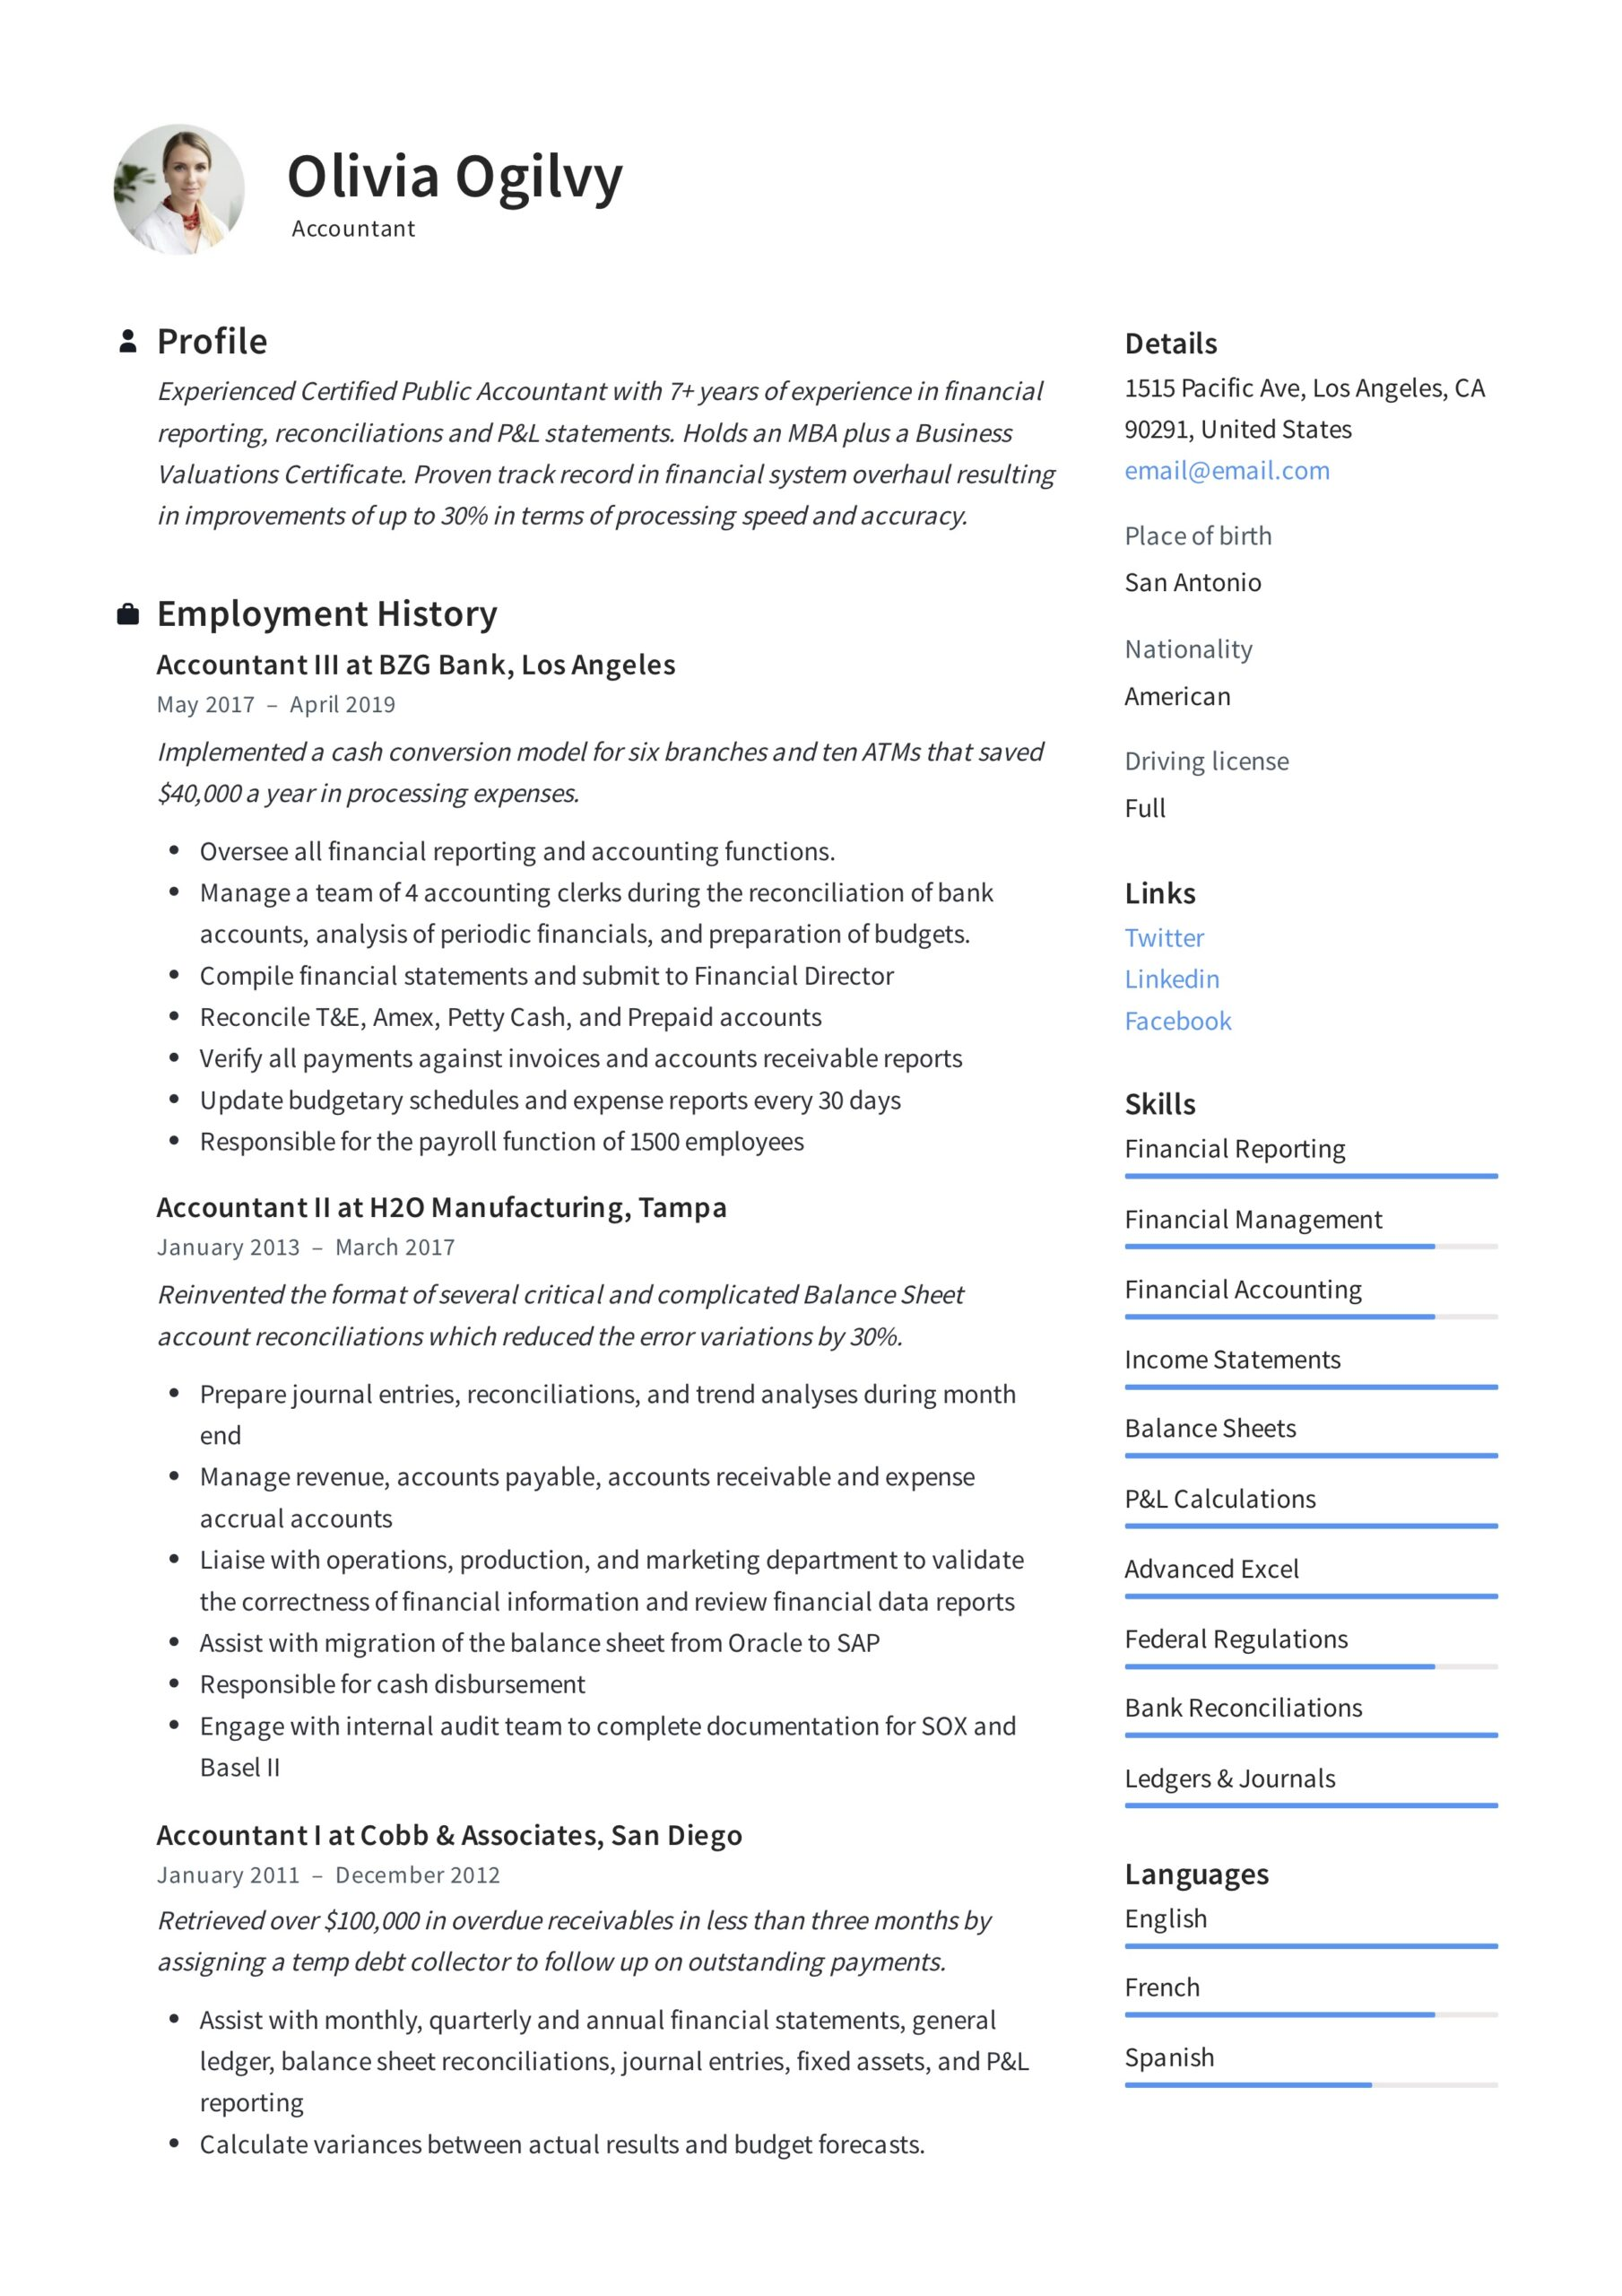 accountant resume writing guide templates pdf latest format for olivia ogilvy Resume Latest Resume Format For Accountant